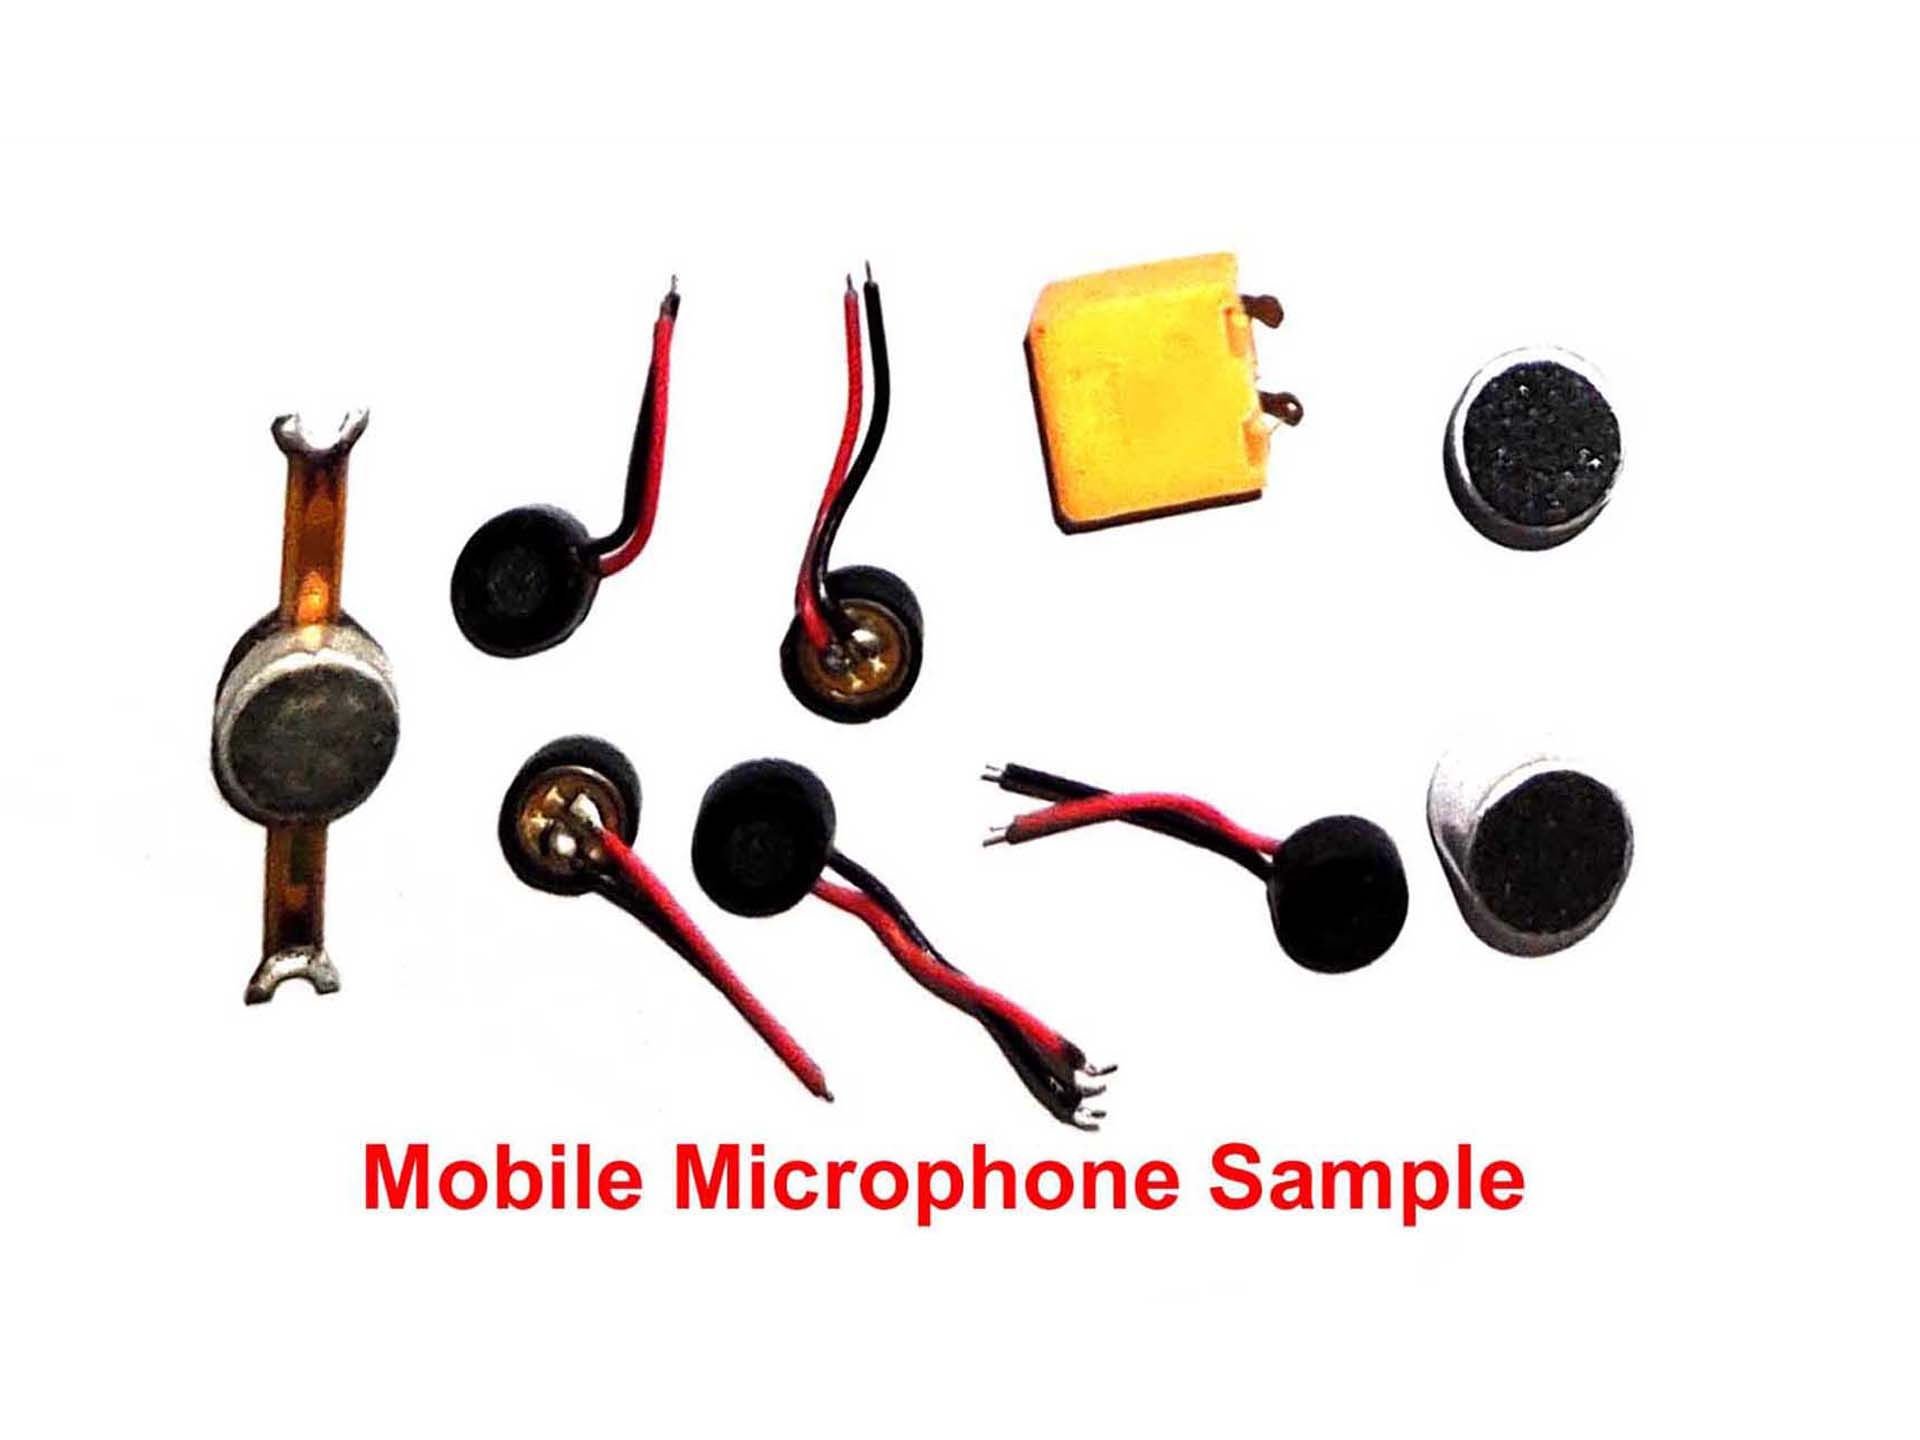 Mobile Microphone Sample